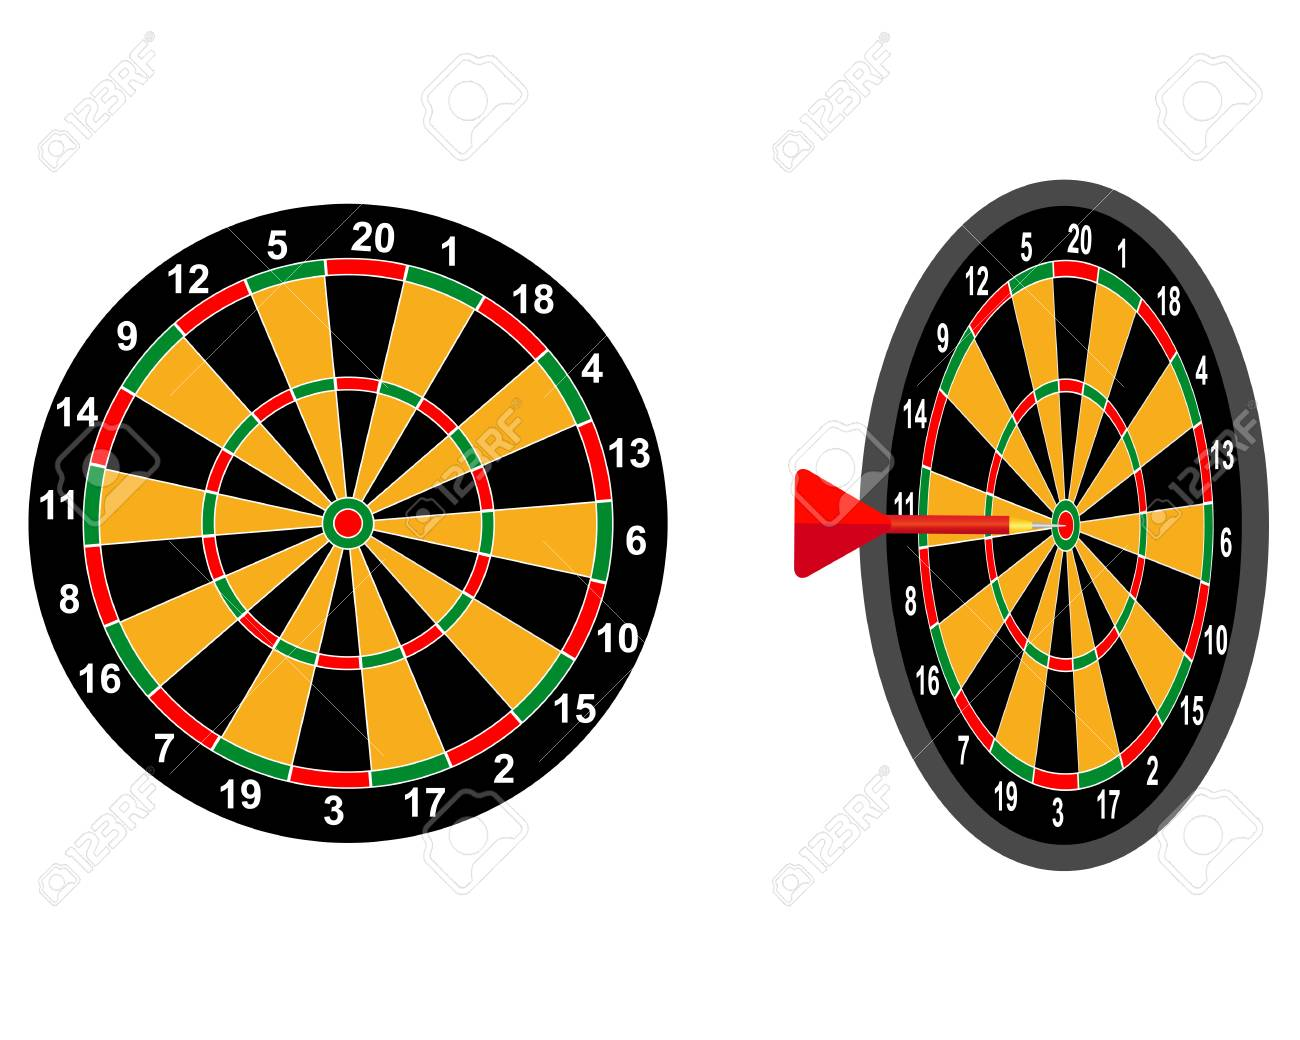 Darts Game Dart Target With Two Digits Royalty Free Cliparts